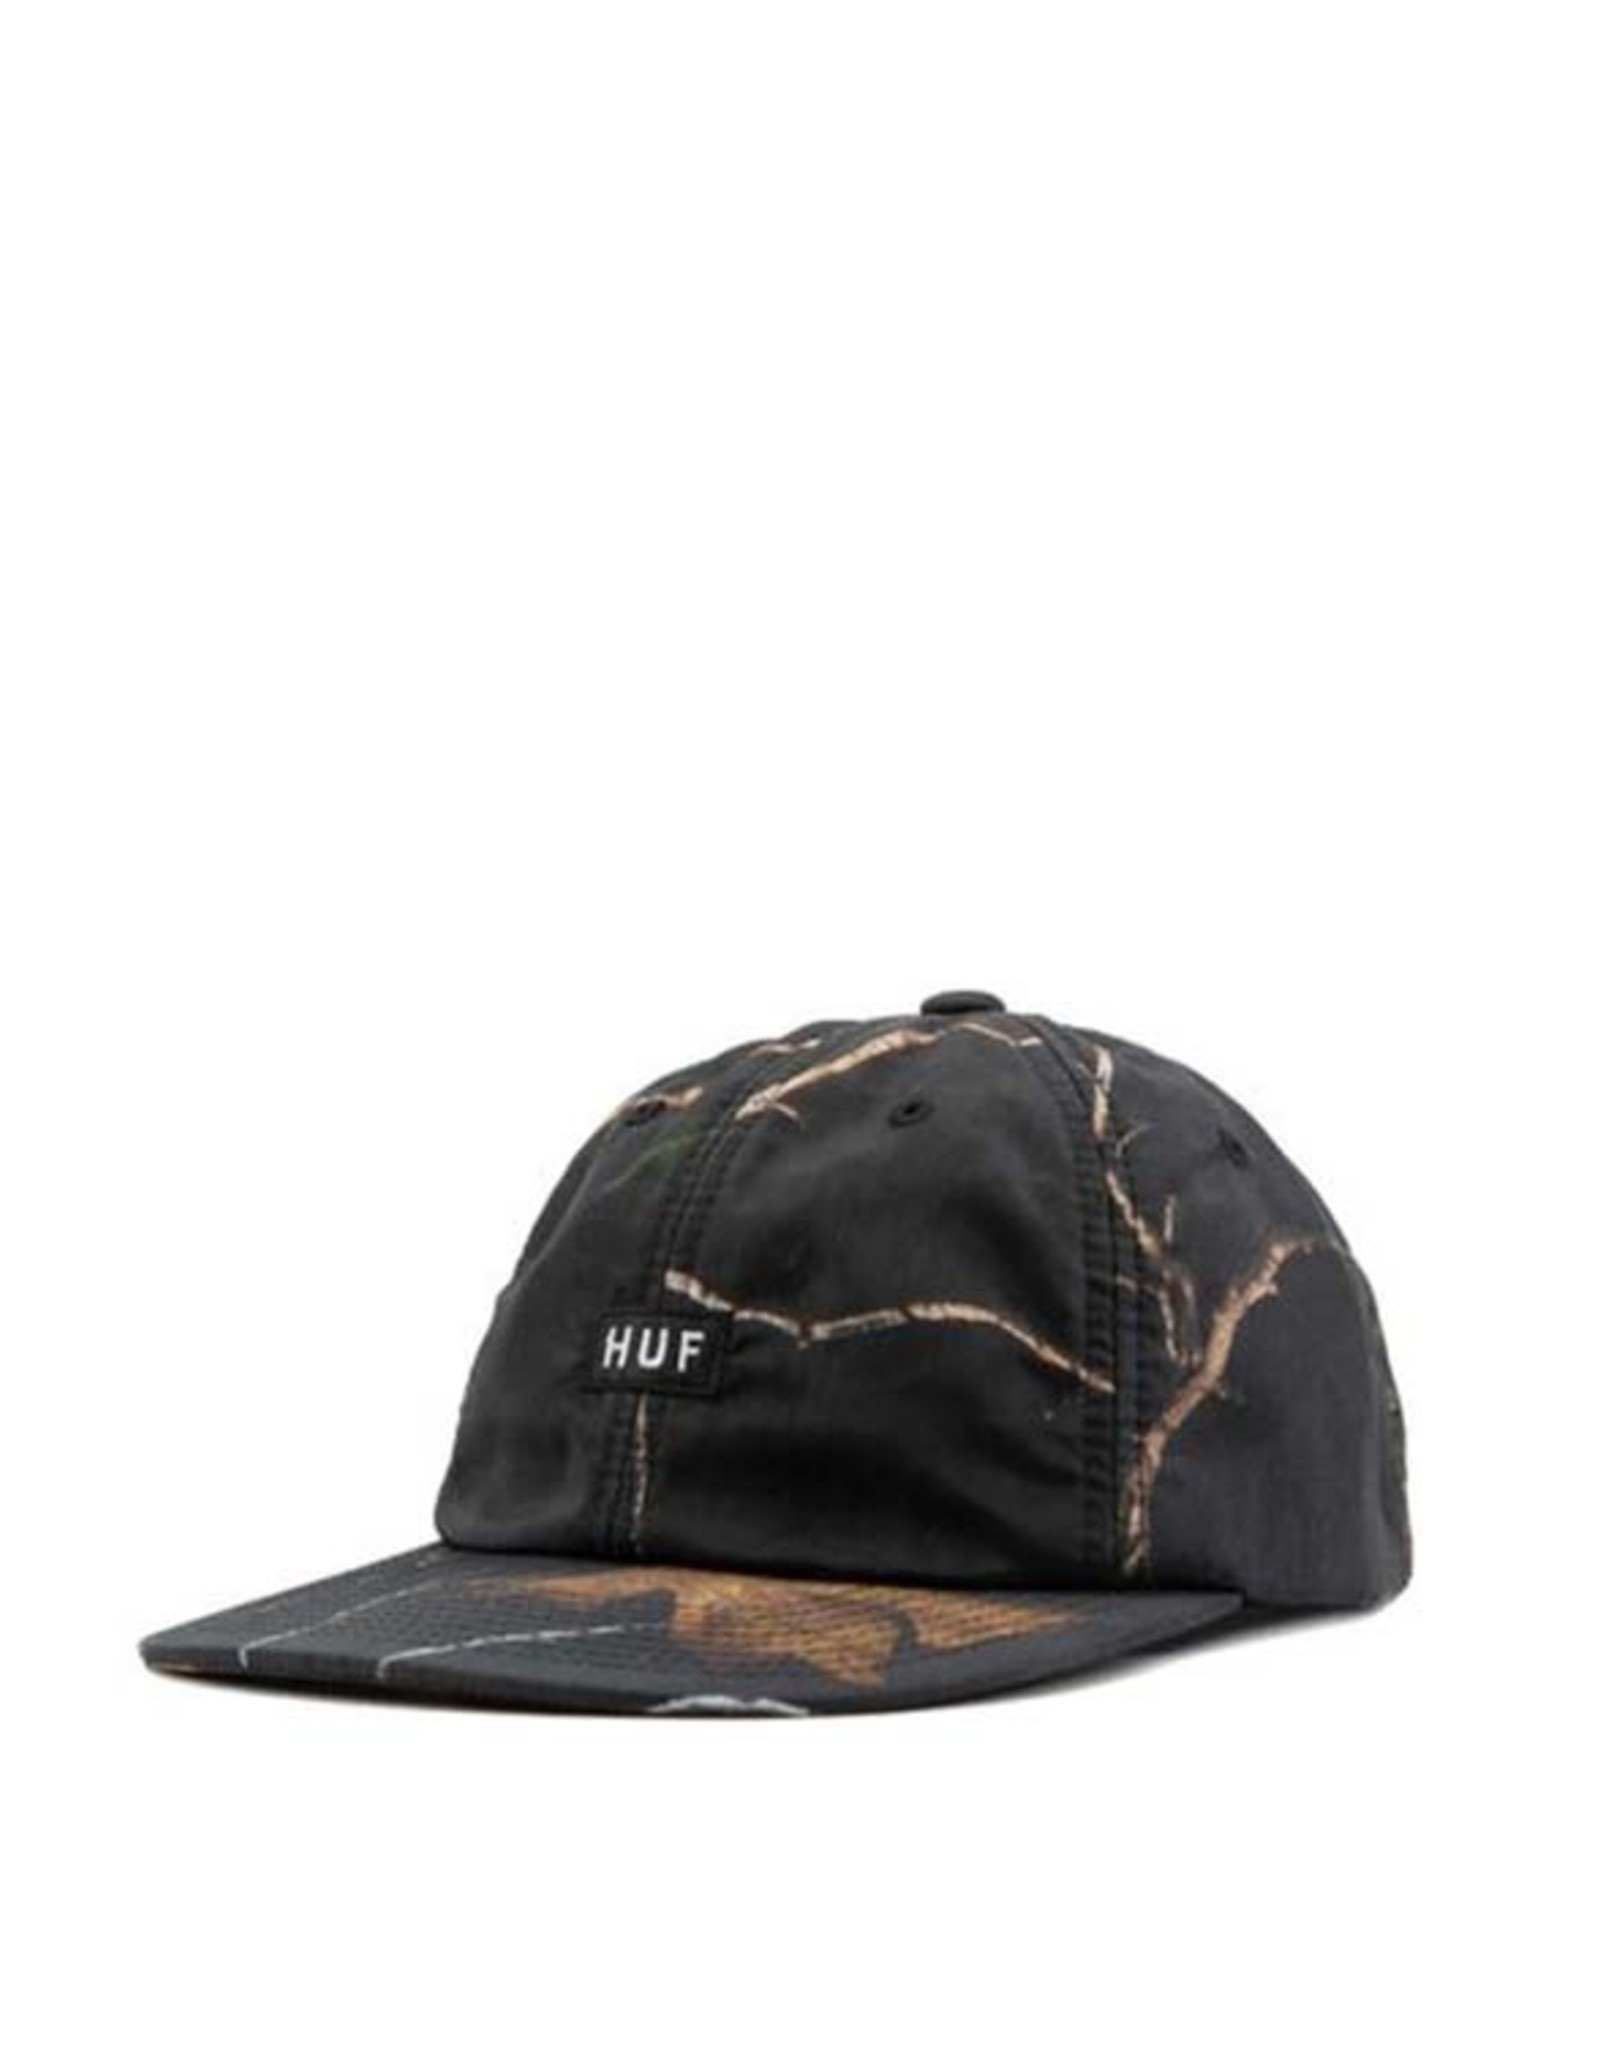 HUF REAL TREE 6 PANEL CAP